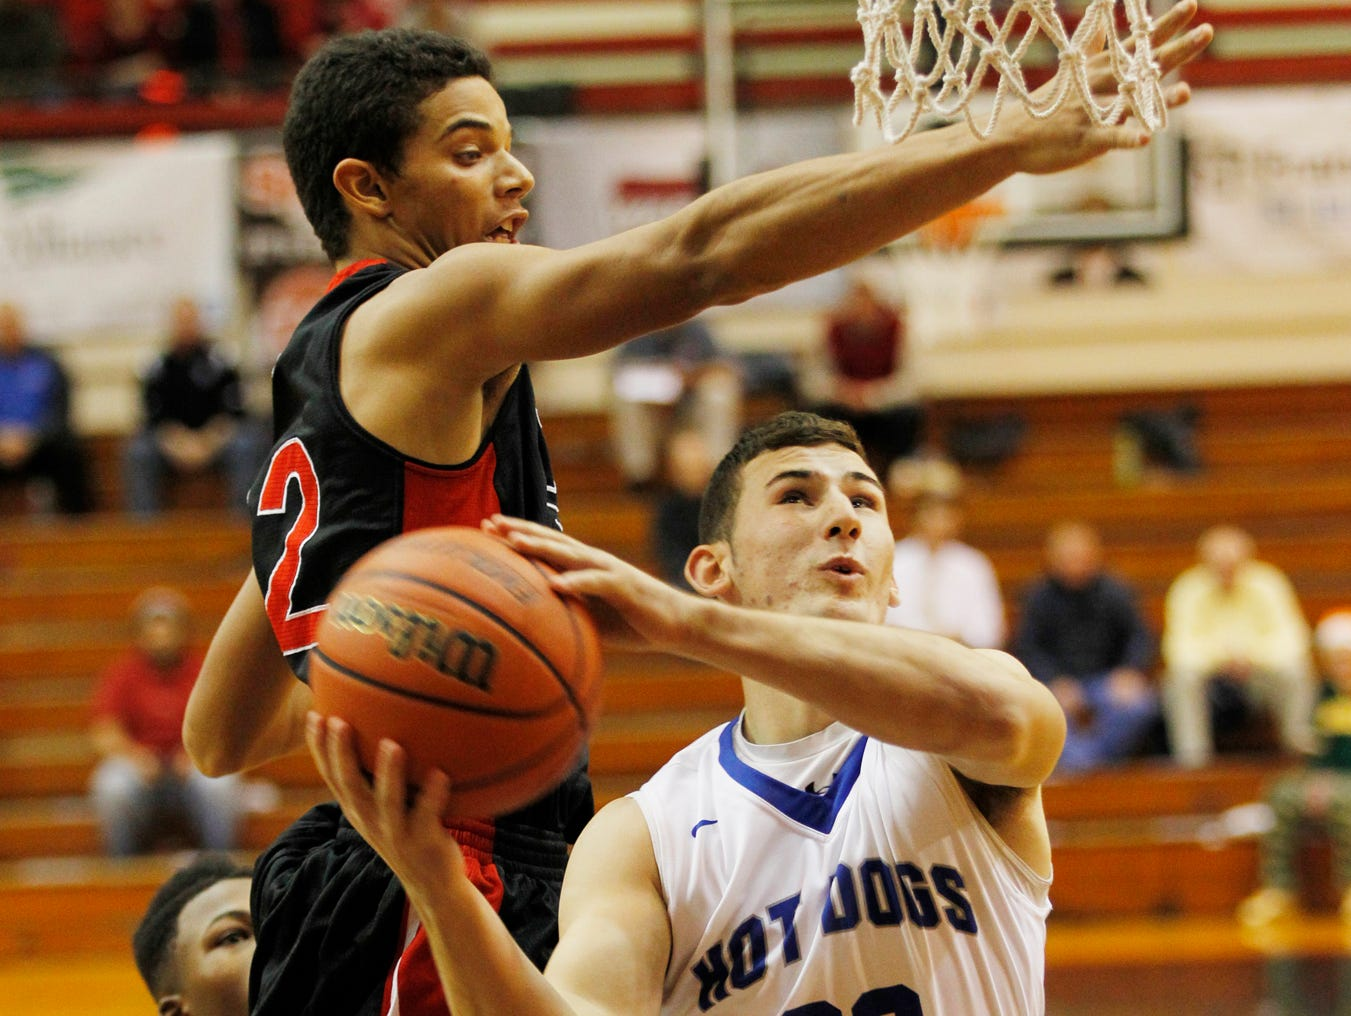 Frankfort's Jarrod Smith drives to the basket against Lafayette Jeff in the J&C Hoops Classic Monday, November 30, 2015, at Jefferson High School. Jeff held off Frankfort 71-66.